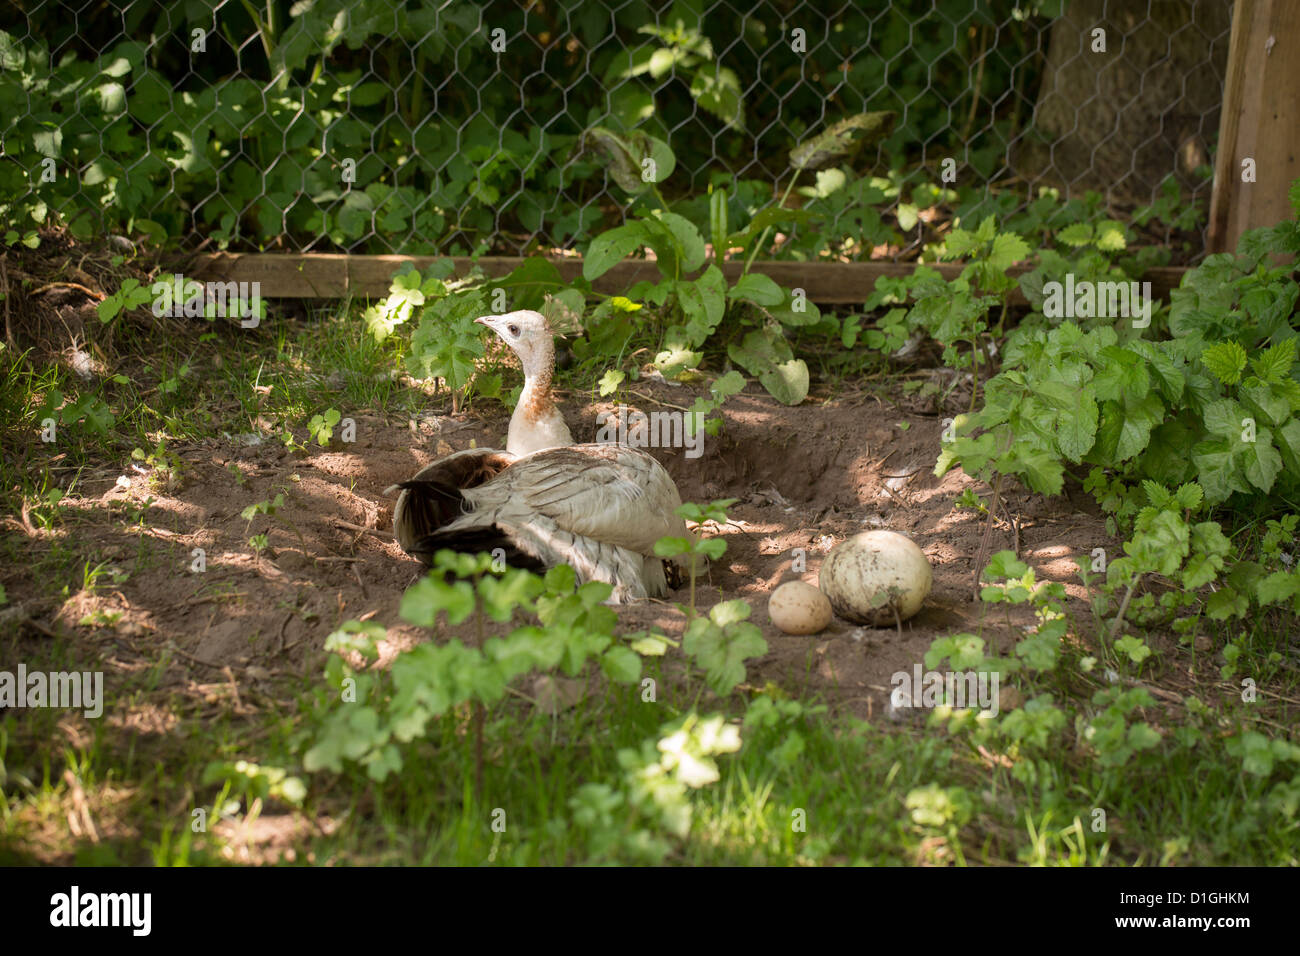 Female Peahen (Phasianidae) Peacock by her eggs and nest - Stock Image